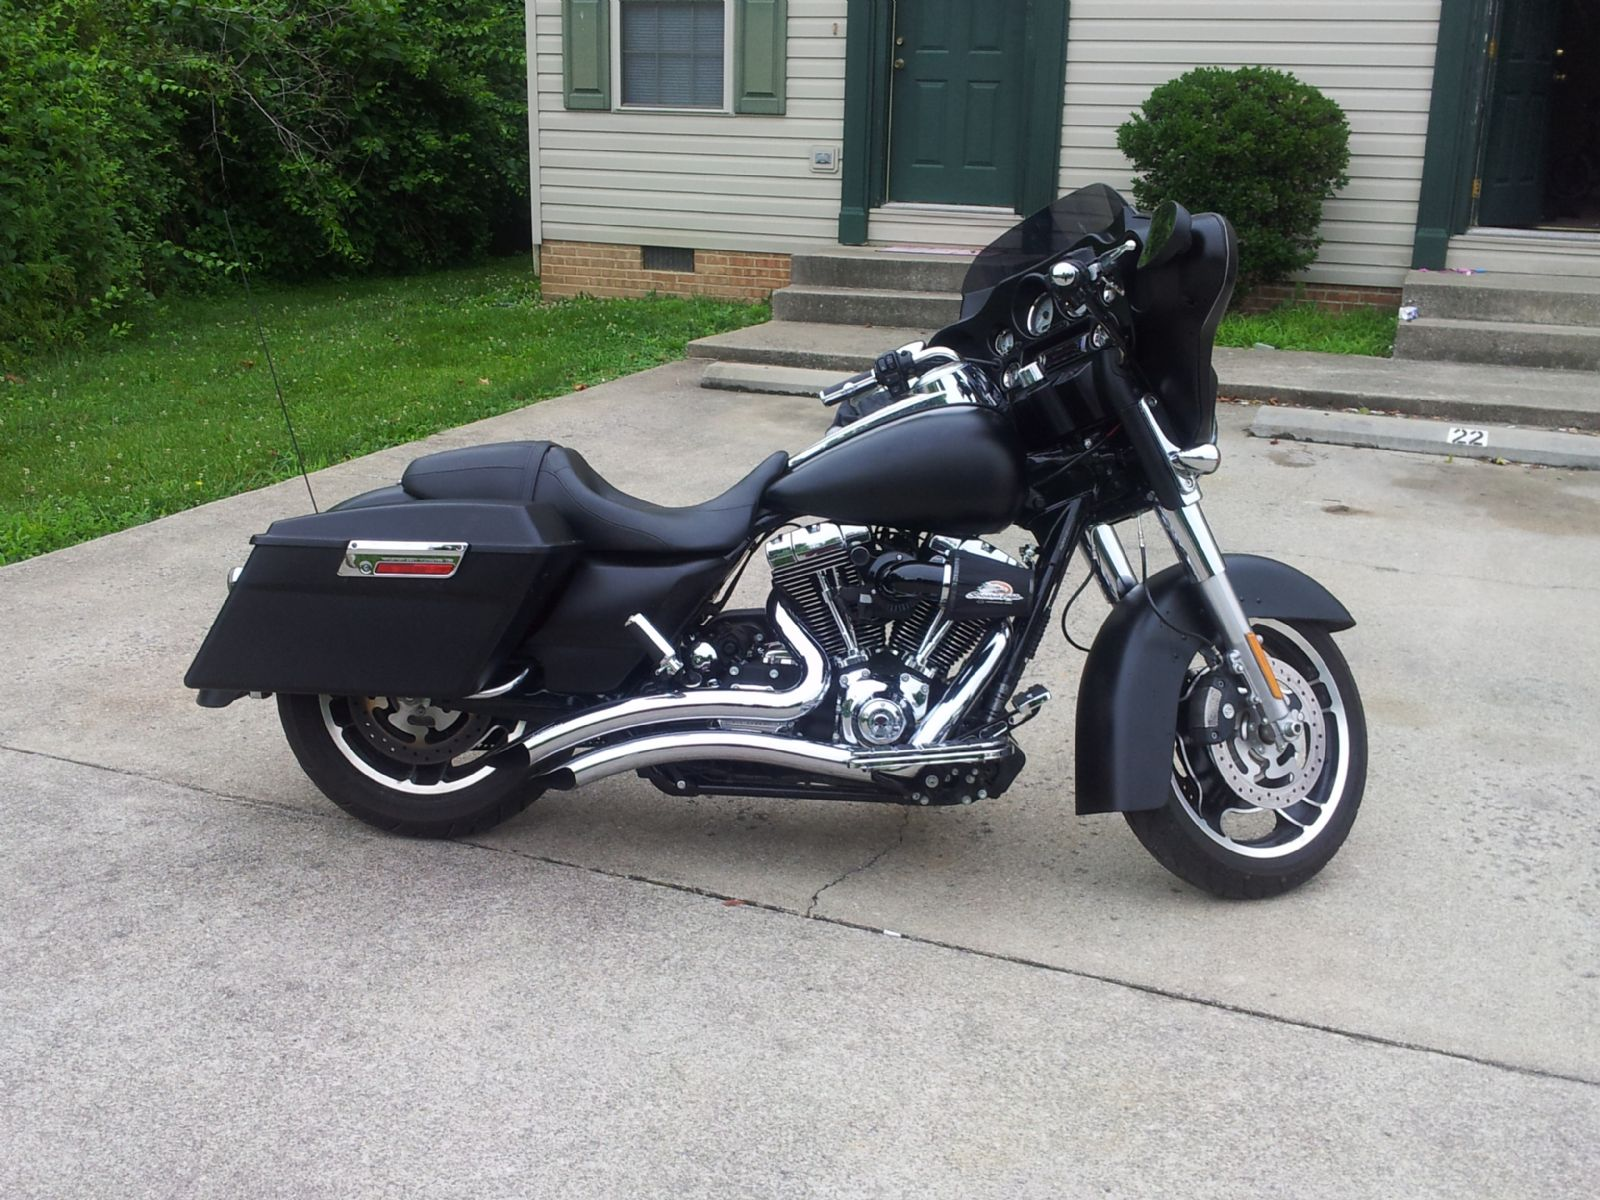 harley Davidson street glide For Sale | Berea Ohio